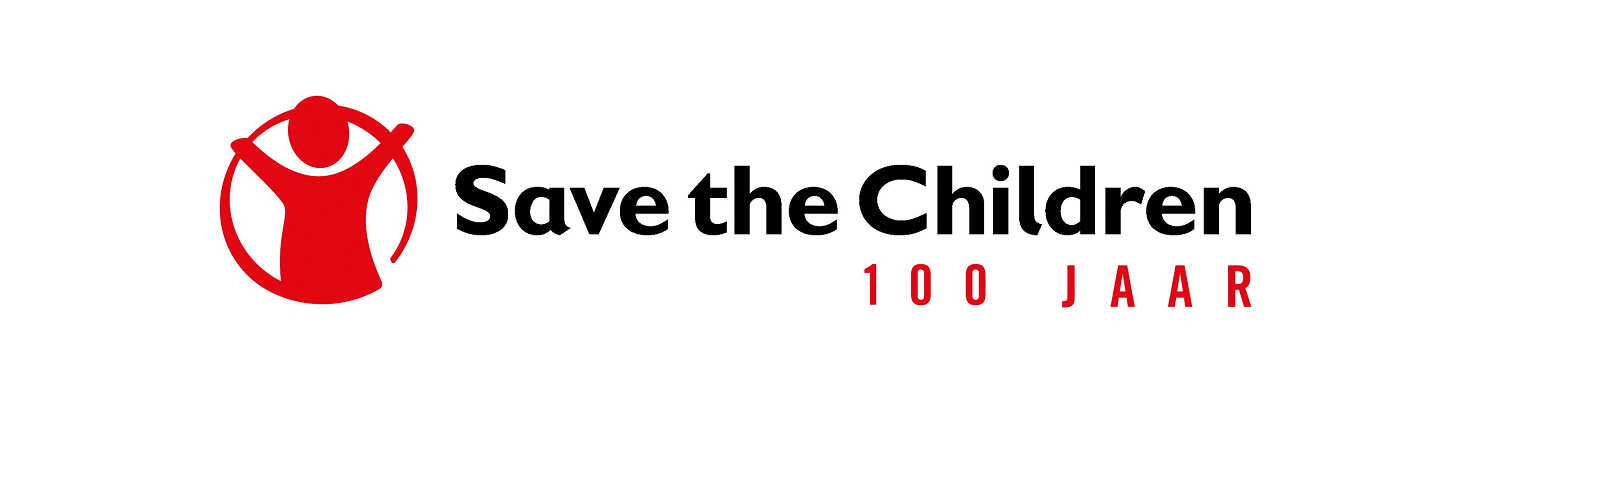 Save the Children 100 jaar hor